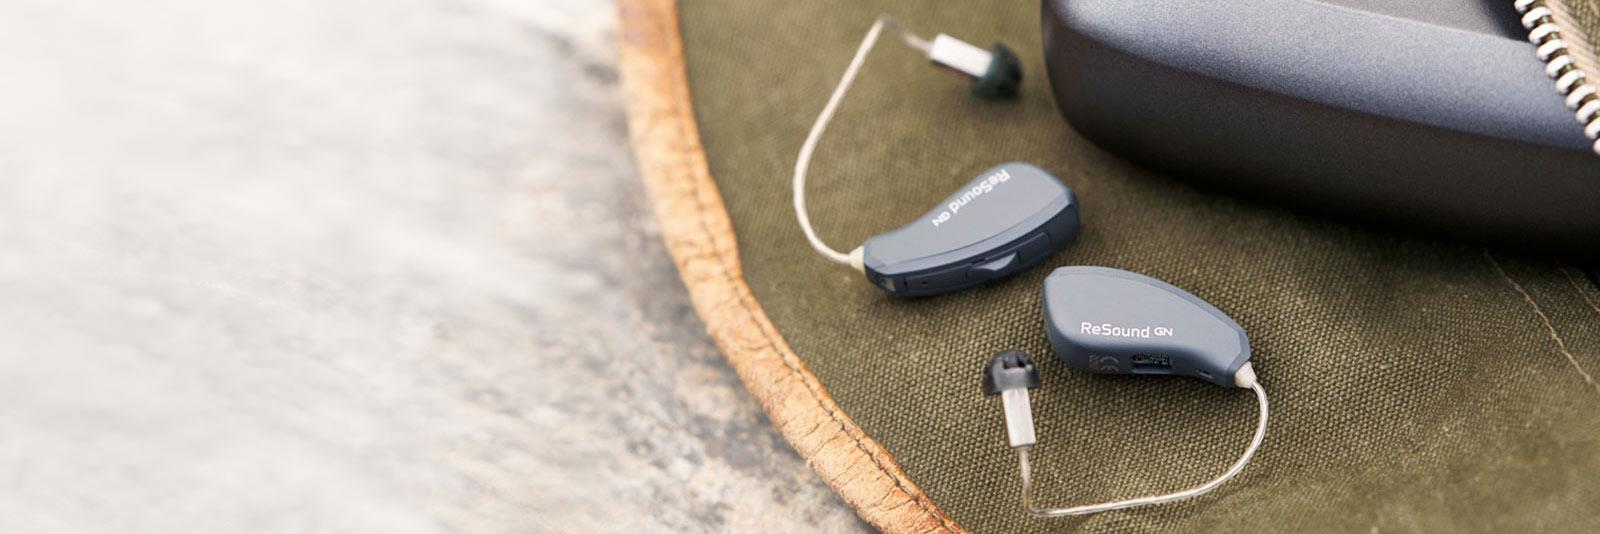 ReSound LiNX Quattro with Charger on canvas bag